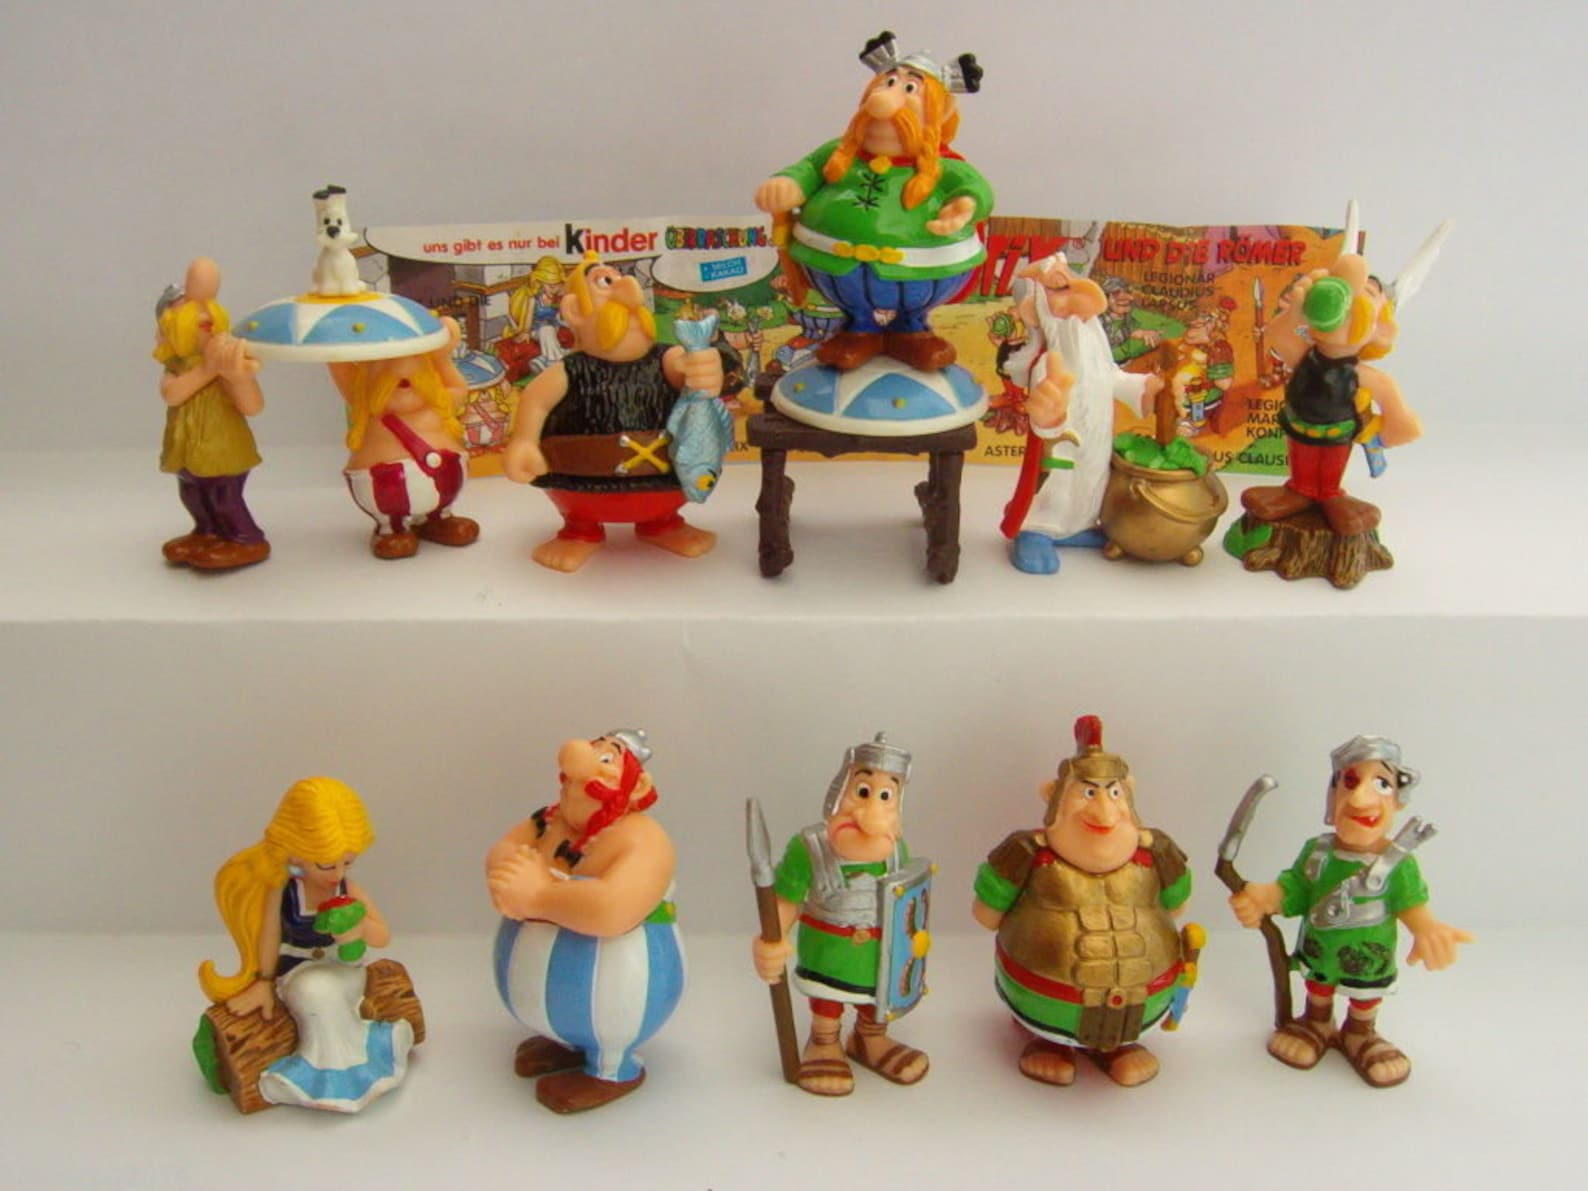 Kinder Surprise Complete Collectible 10 Figures ASTERIX and The ROMANS Figurines Miniatures